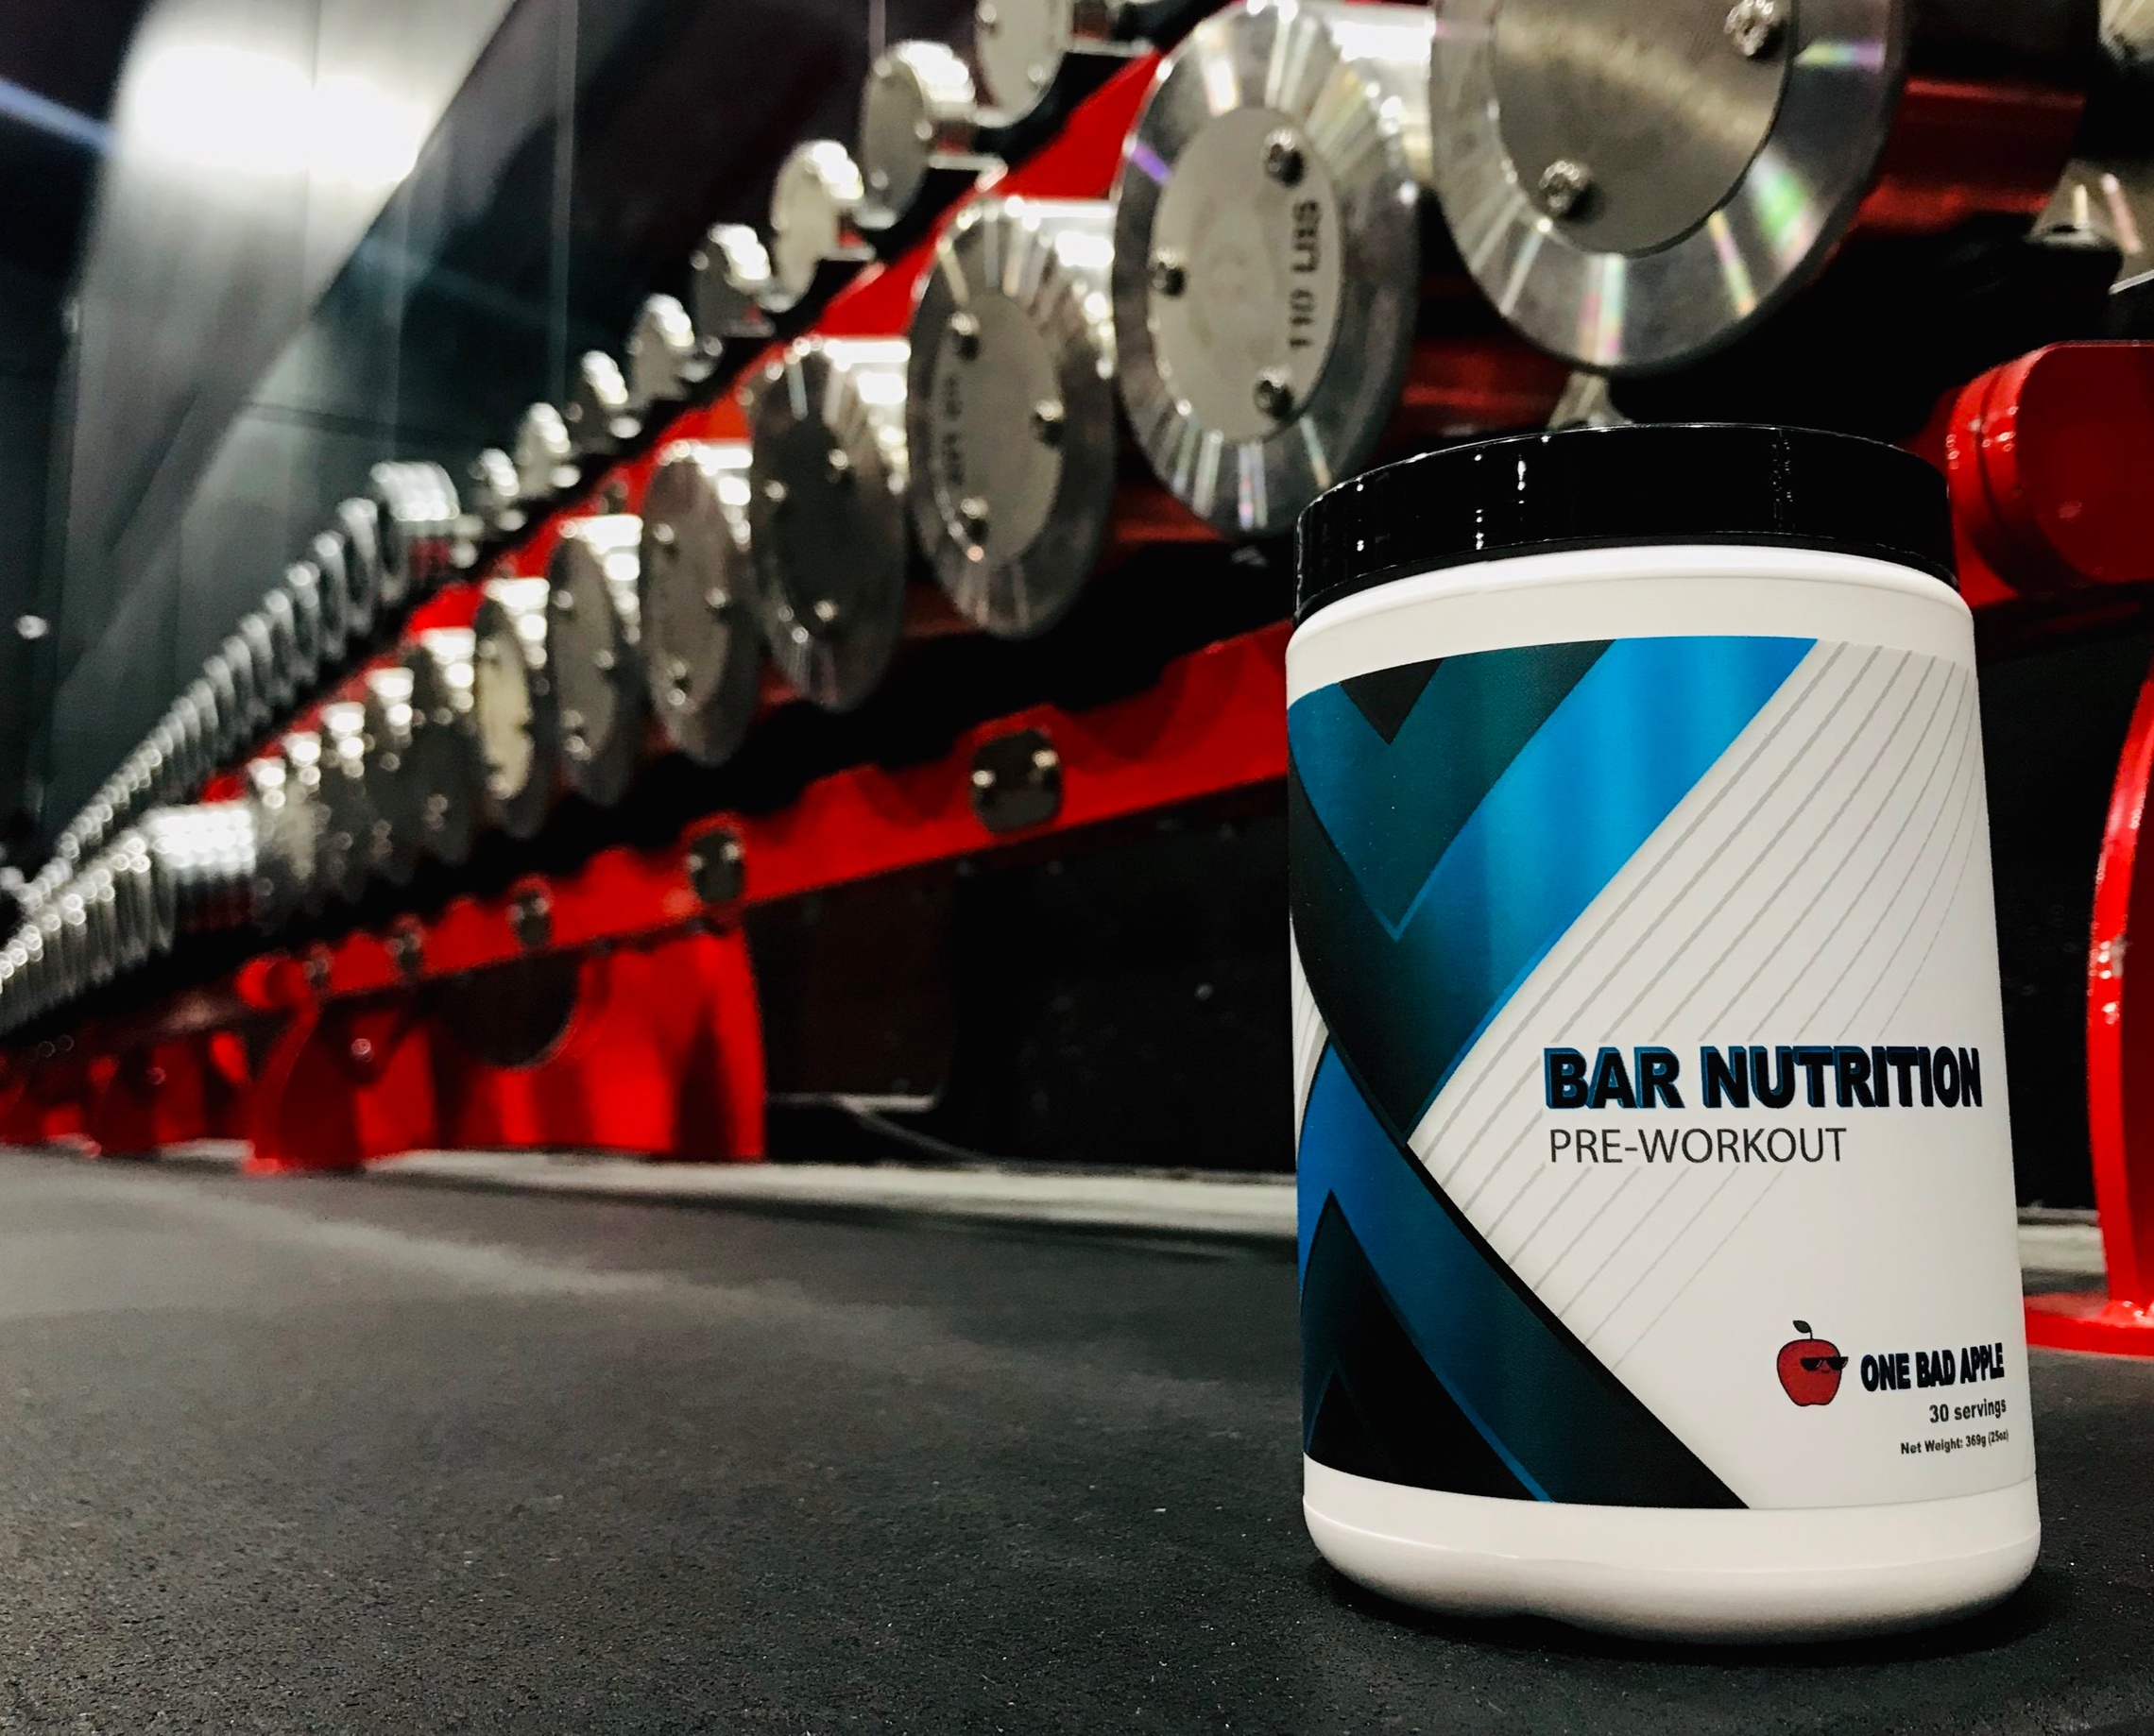 New & Improved Pre-workout - Now Available in Flavor- ONE BAD APPLE